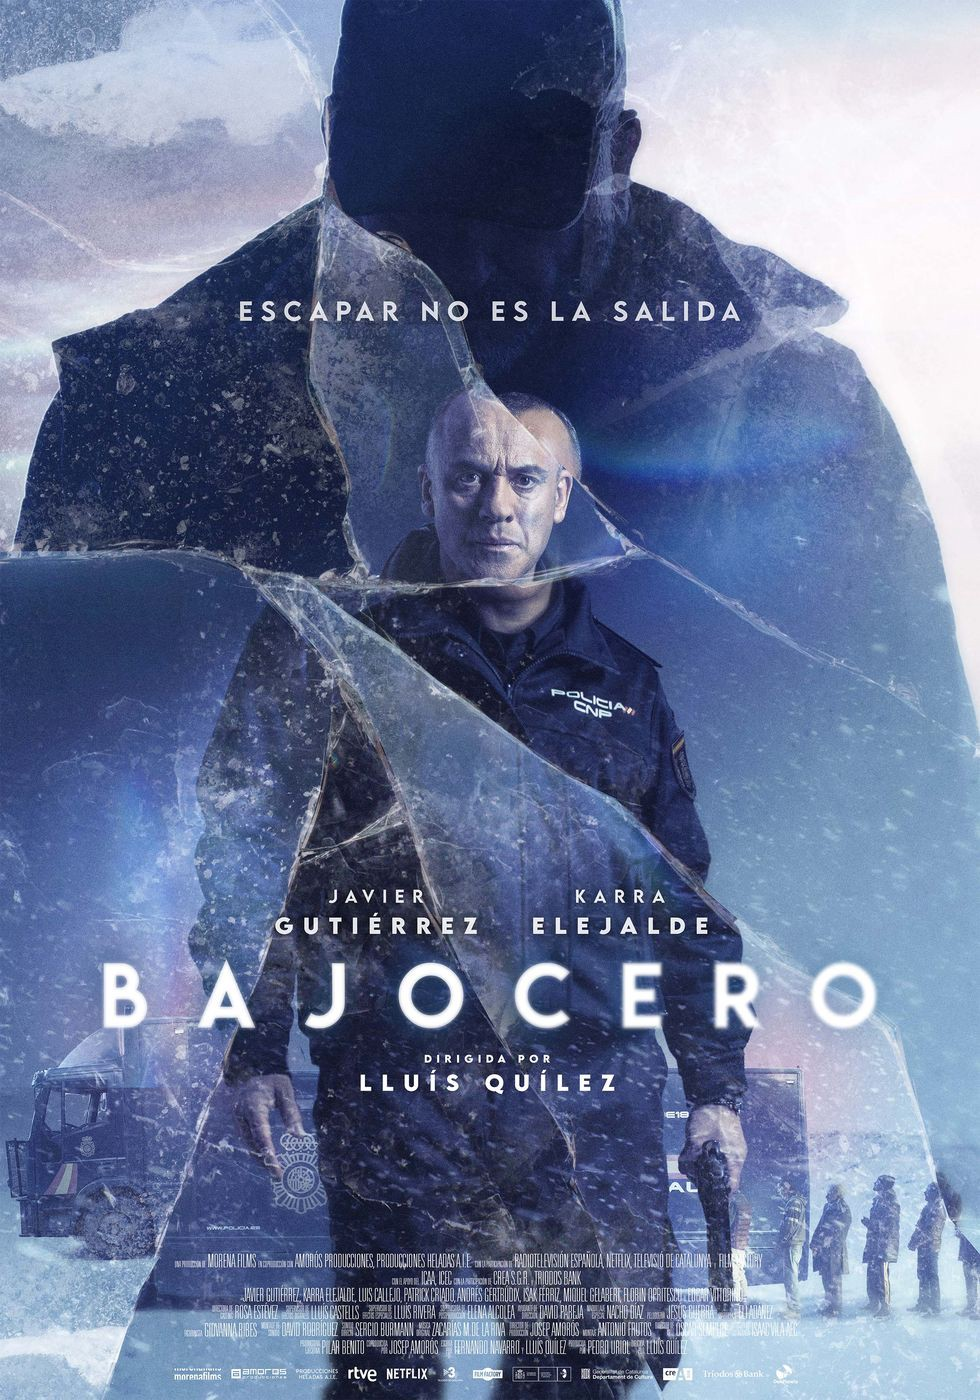 Repelis Hd Ver Pelicula Bajocero Completa Espanol Latino 2021 Castellano By Eabosafyv Jan 2021 Medium